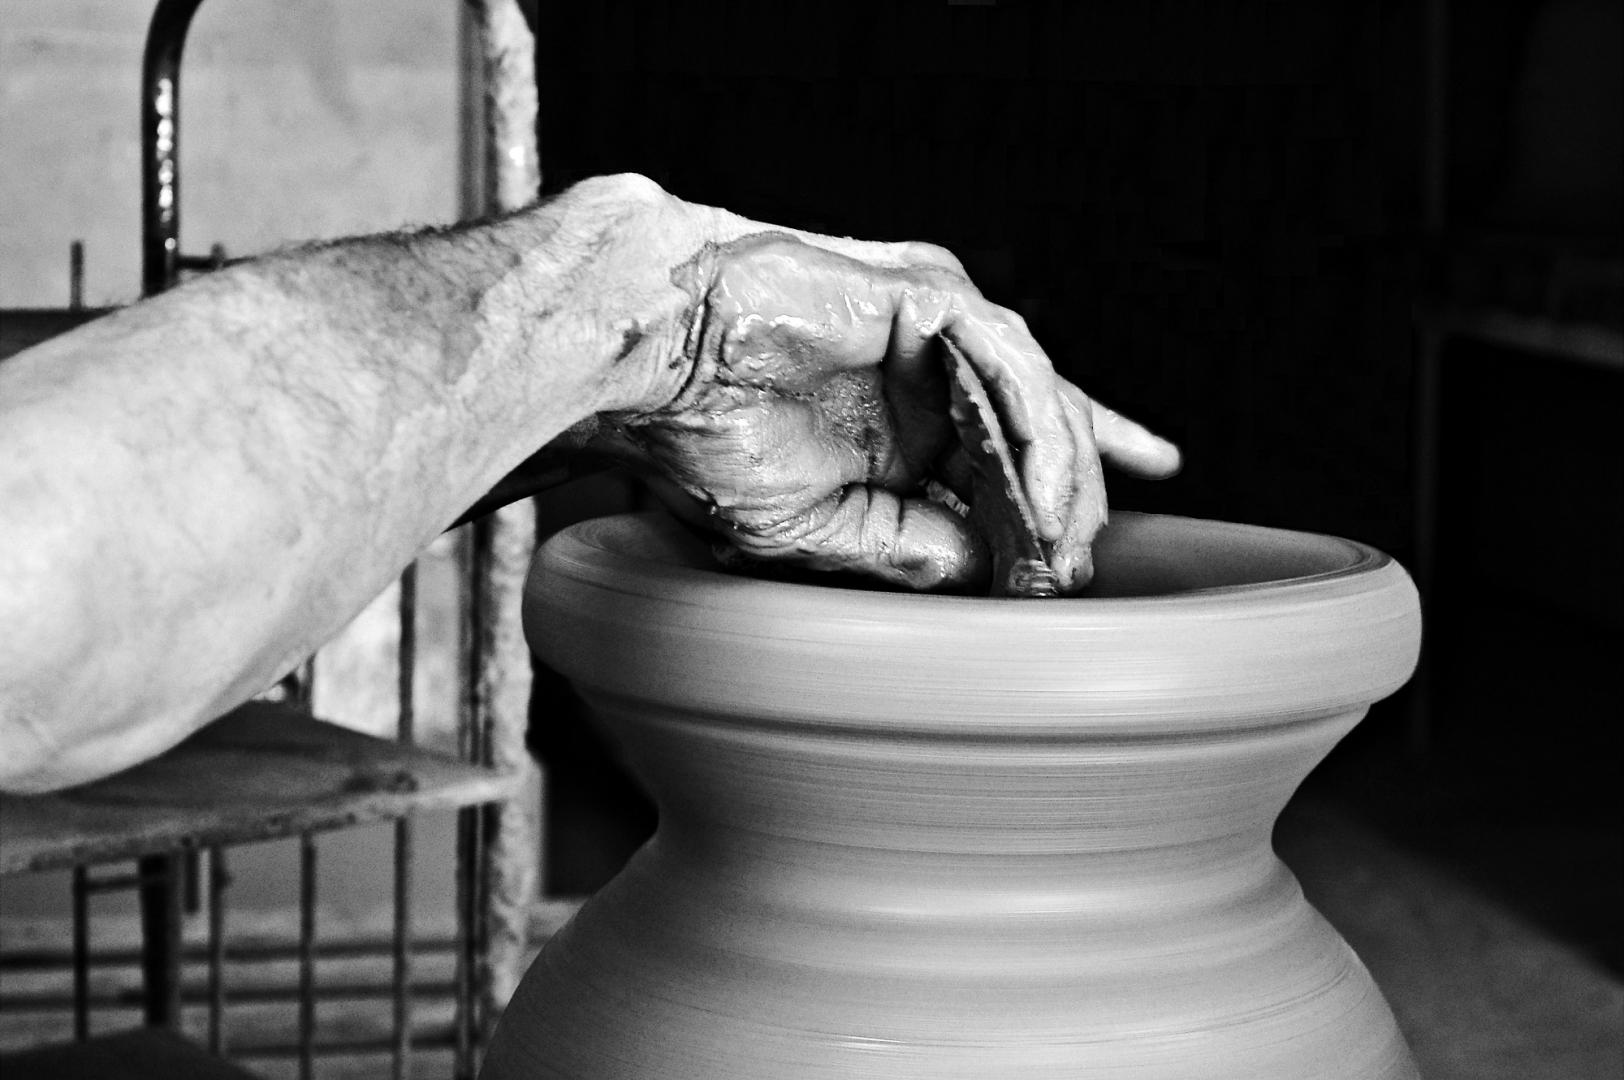 fabrication poterie, poteries artisanales, poterie anduze ...